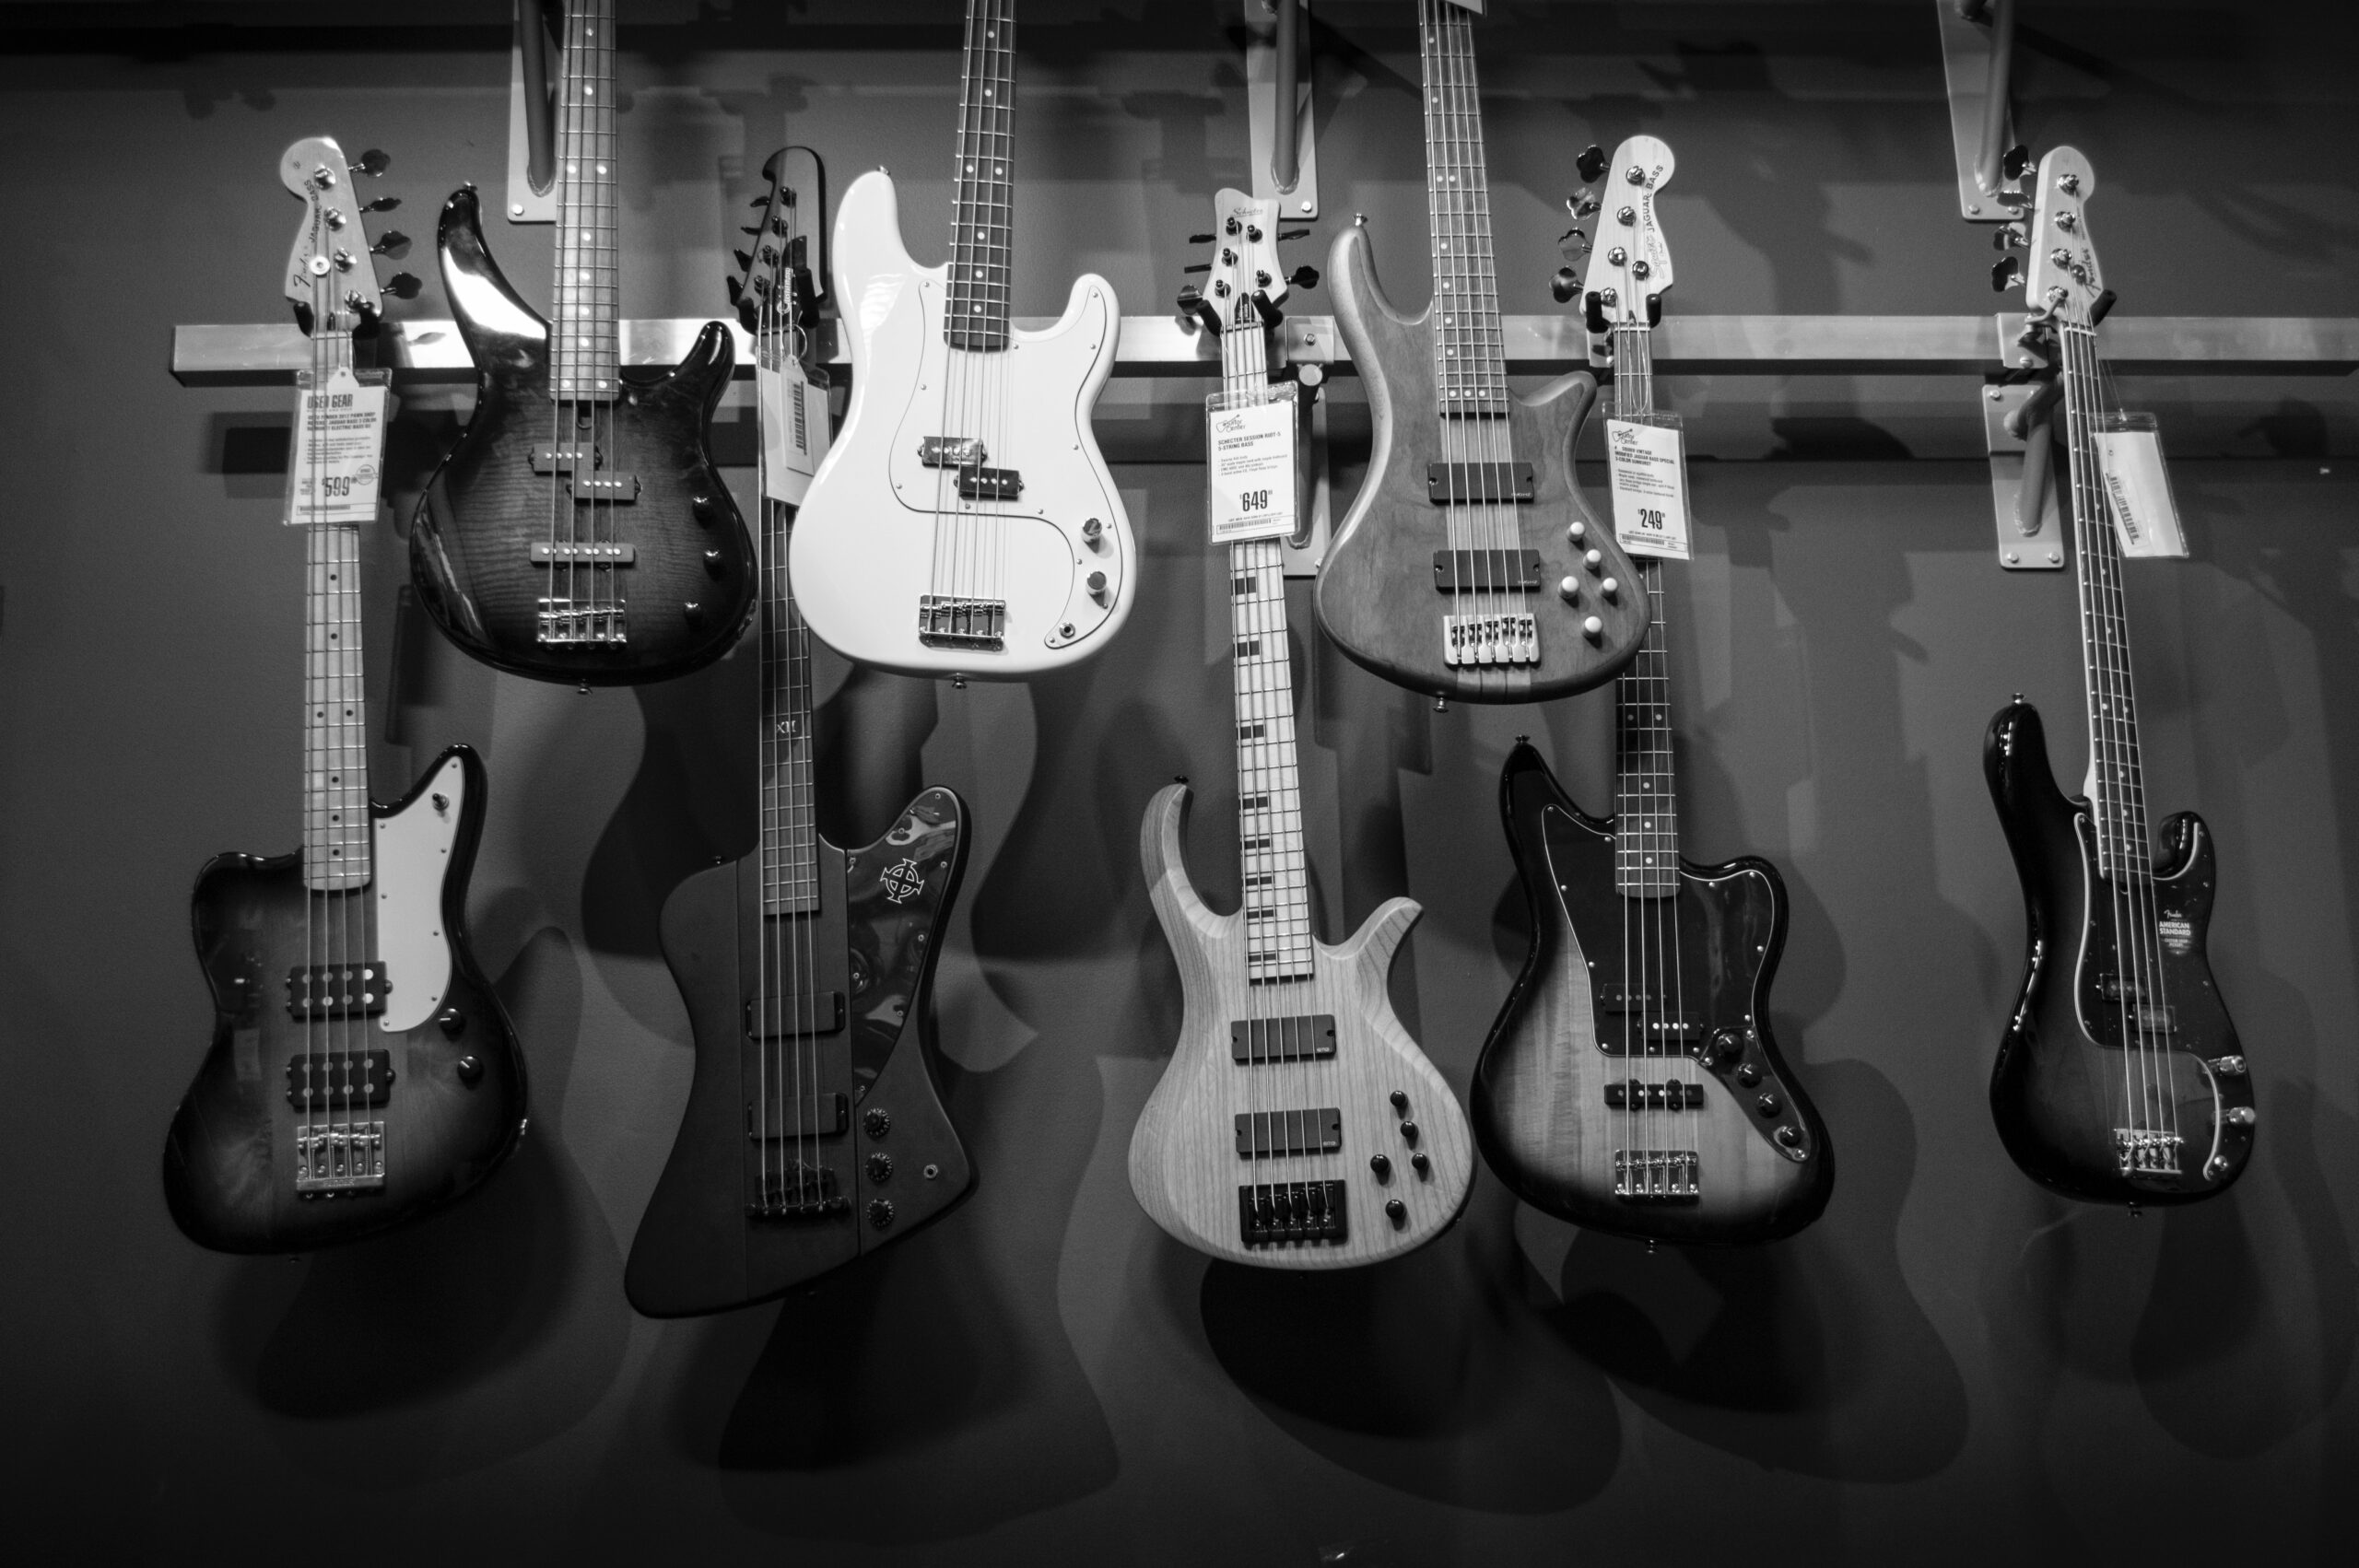 Electric Guitars Hanged on Steel Bar | Bass Guitar for Beginners: A Definitive Guide To Learning